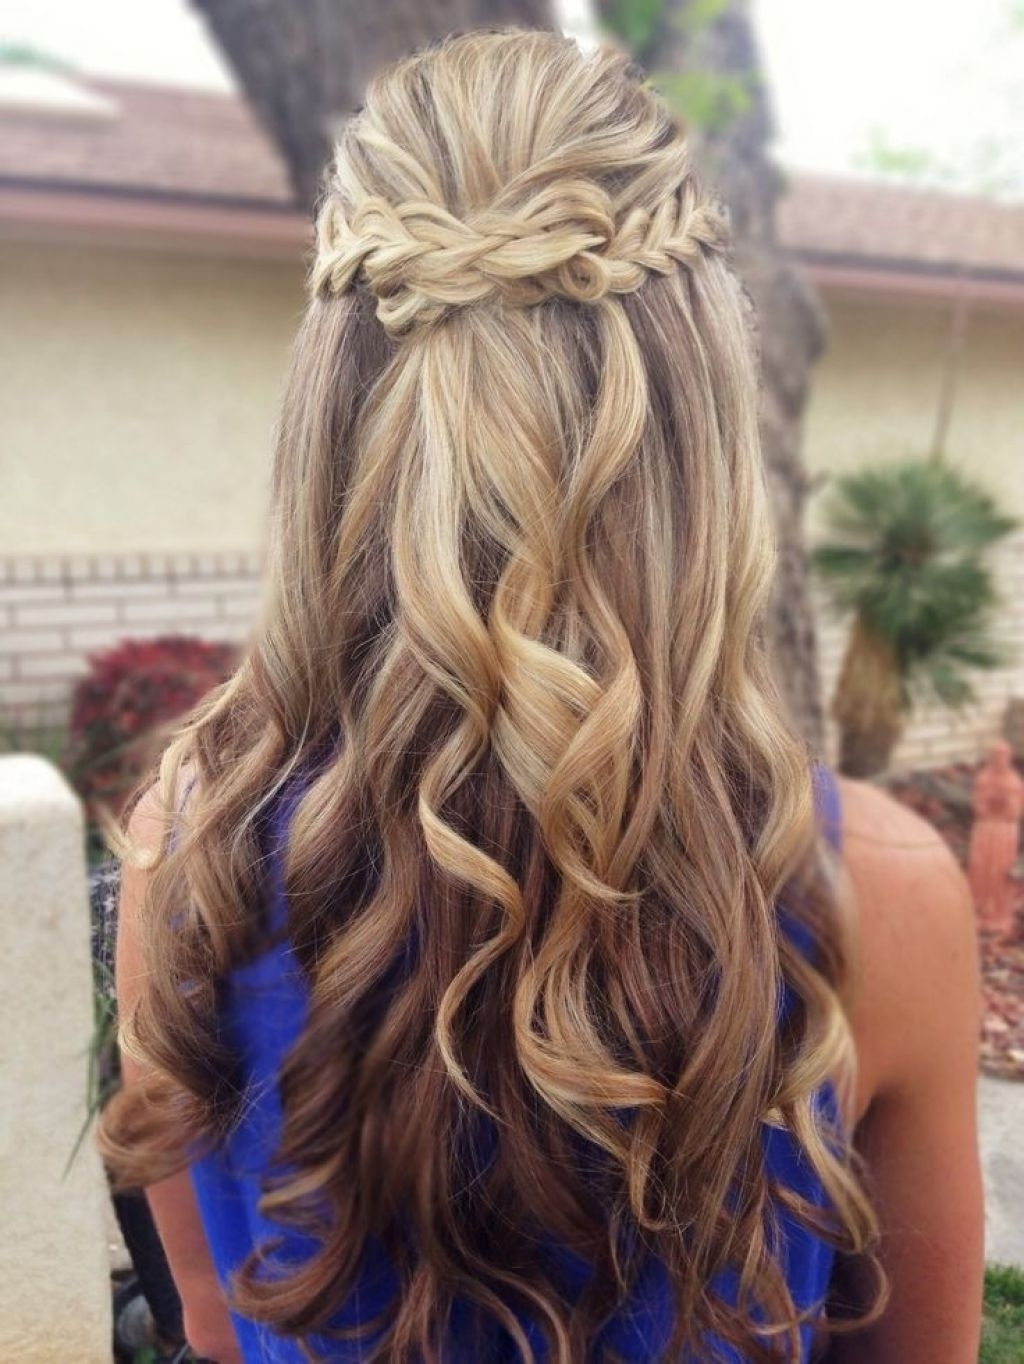 Preferred Formal Half Ponytail Hairstyles Intended For Half Updo Prom Hairstyles Prom Updos For Long Hair Long Hairstyle (View 16 of 20)